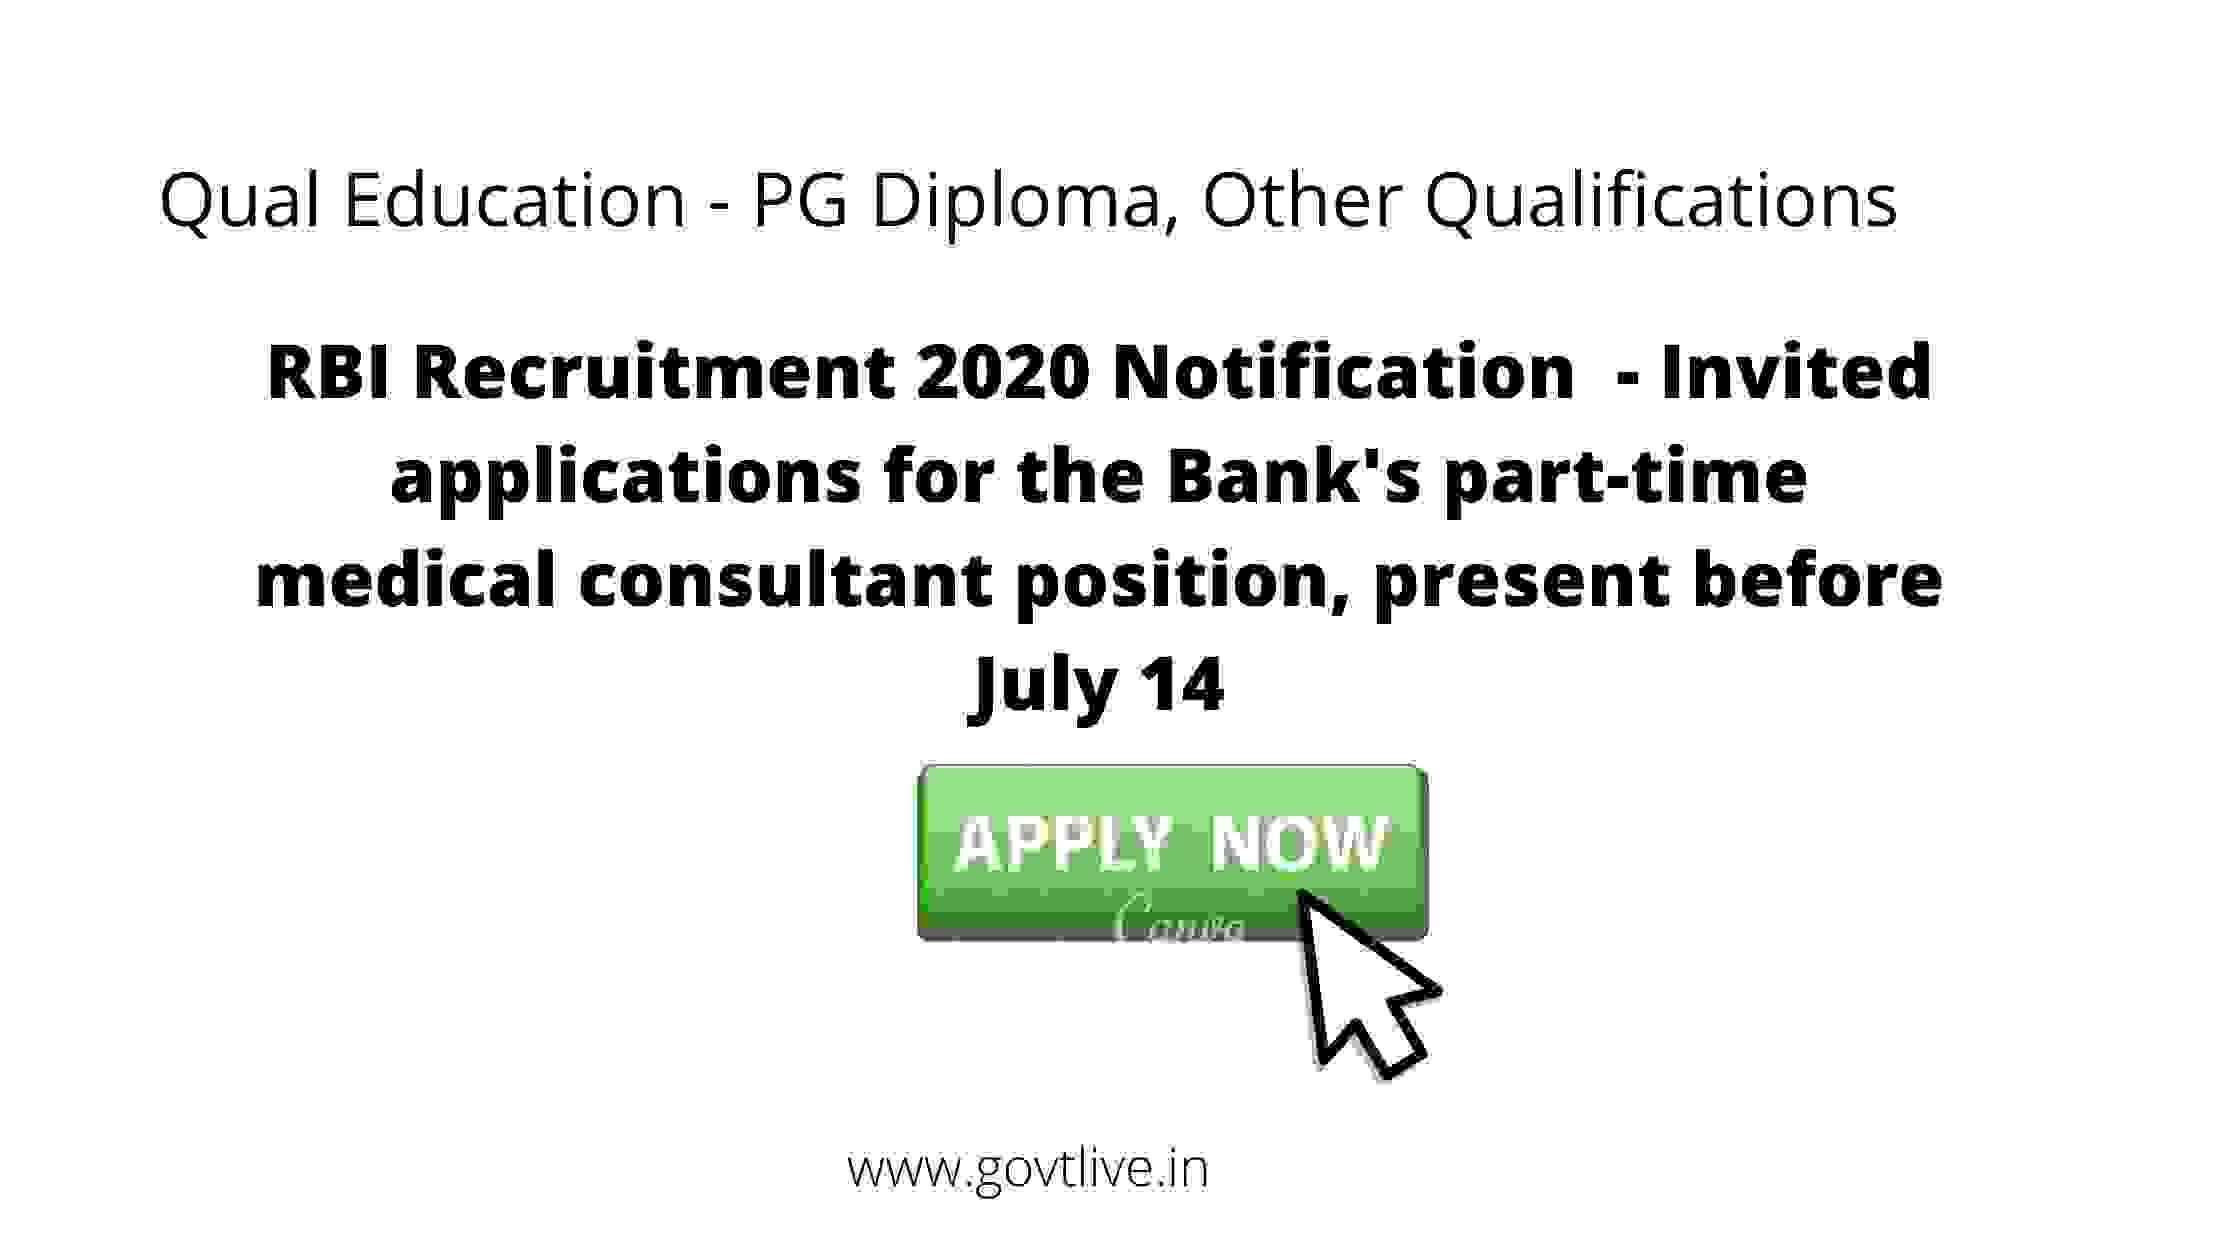 RBI Recruitment 2020 Notification  - Invited applications for the Bank's part-time medical consultant position, present before July 14